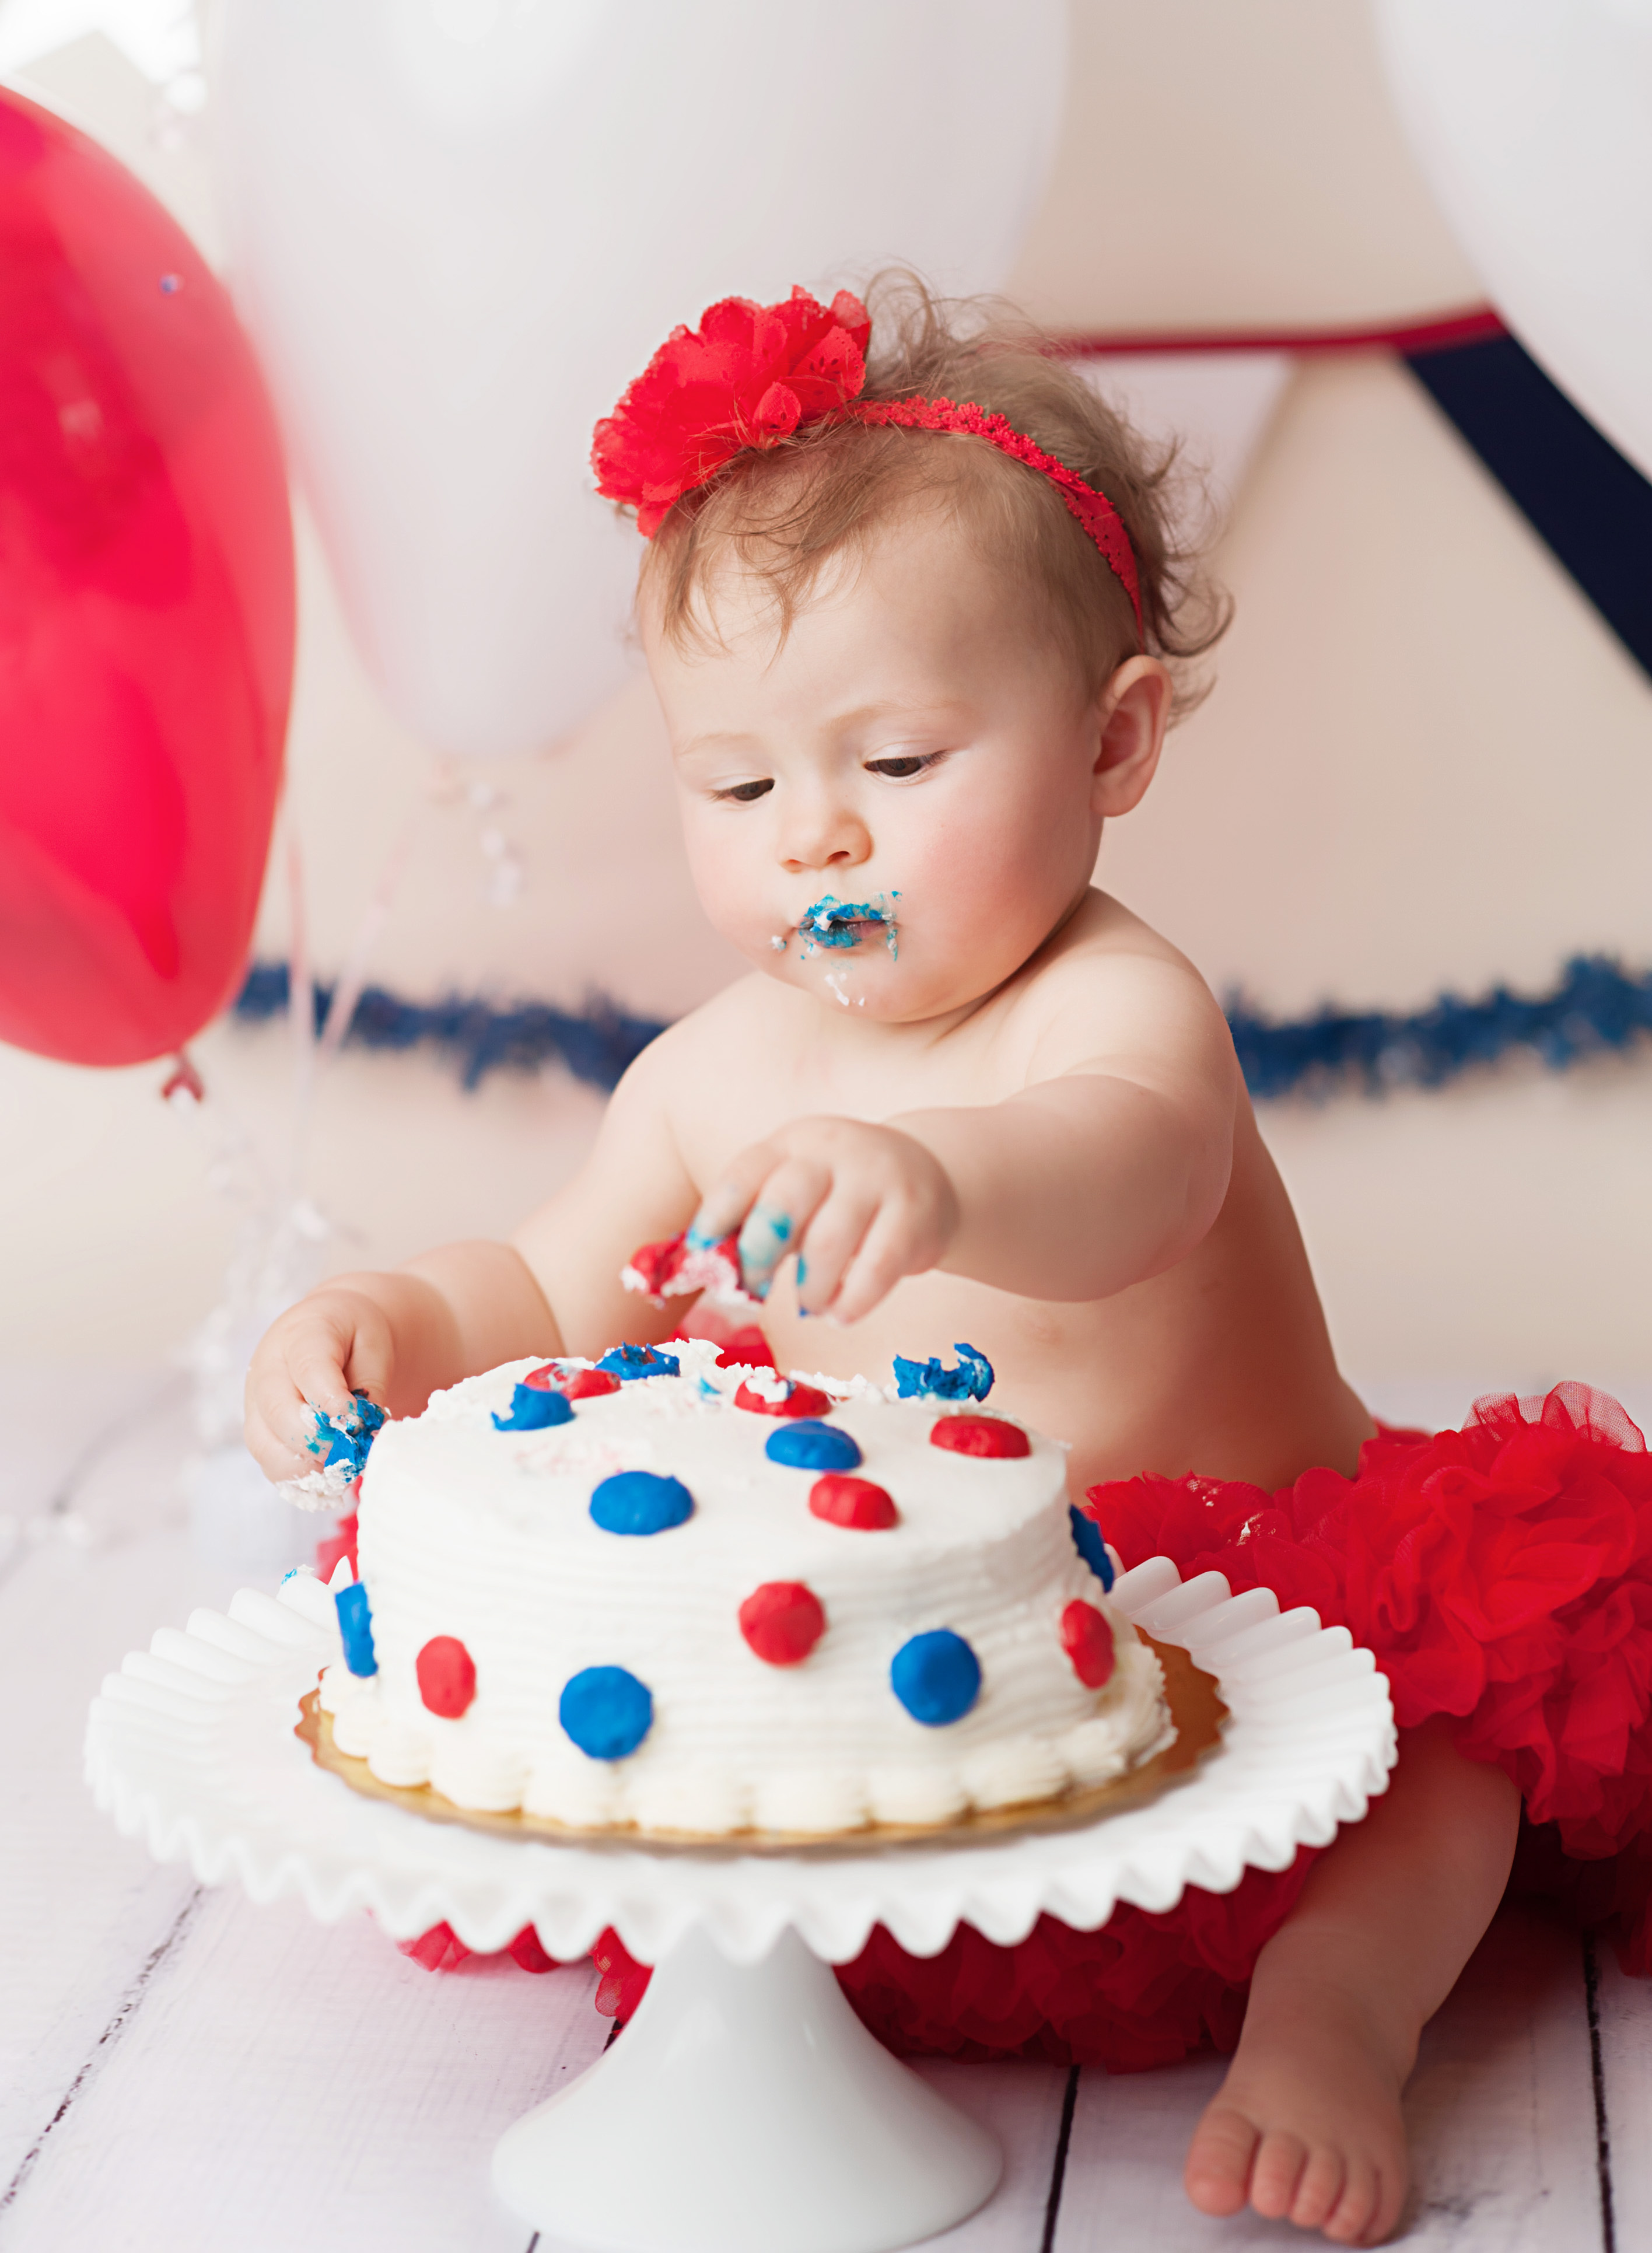 baby eating cake for cake smash session